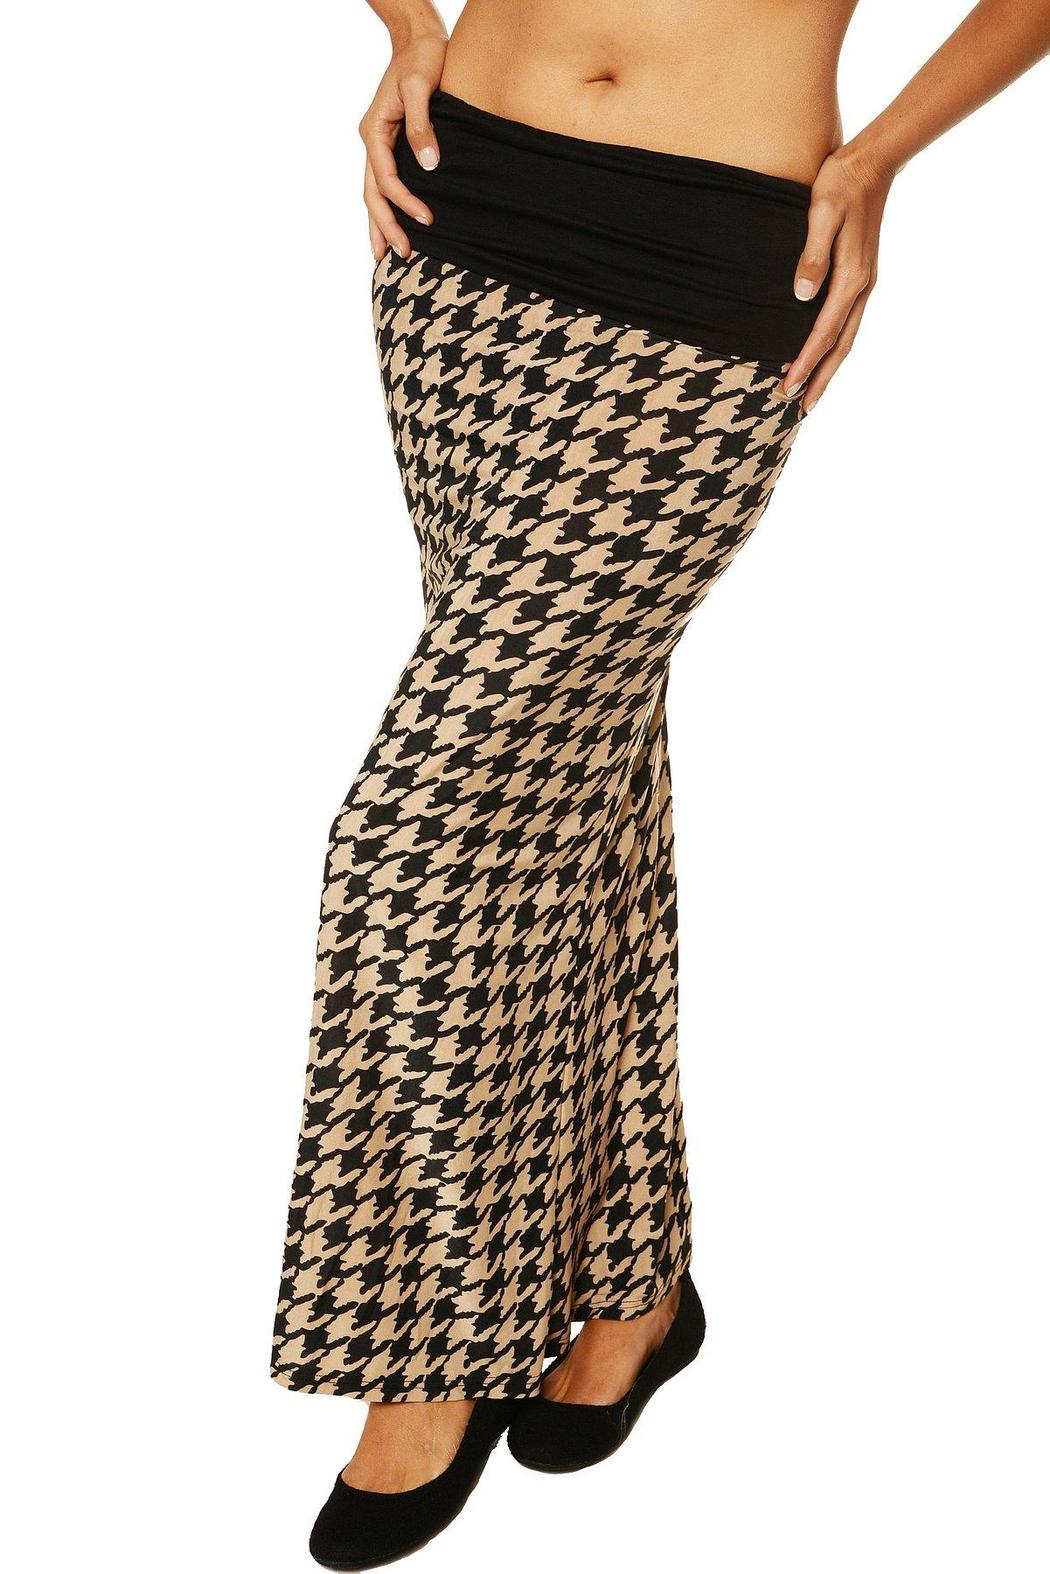 24 7 comfort apparel foldover maxi skirt from california